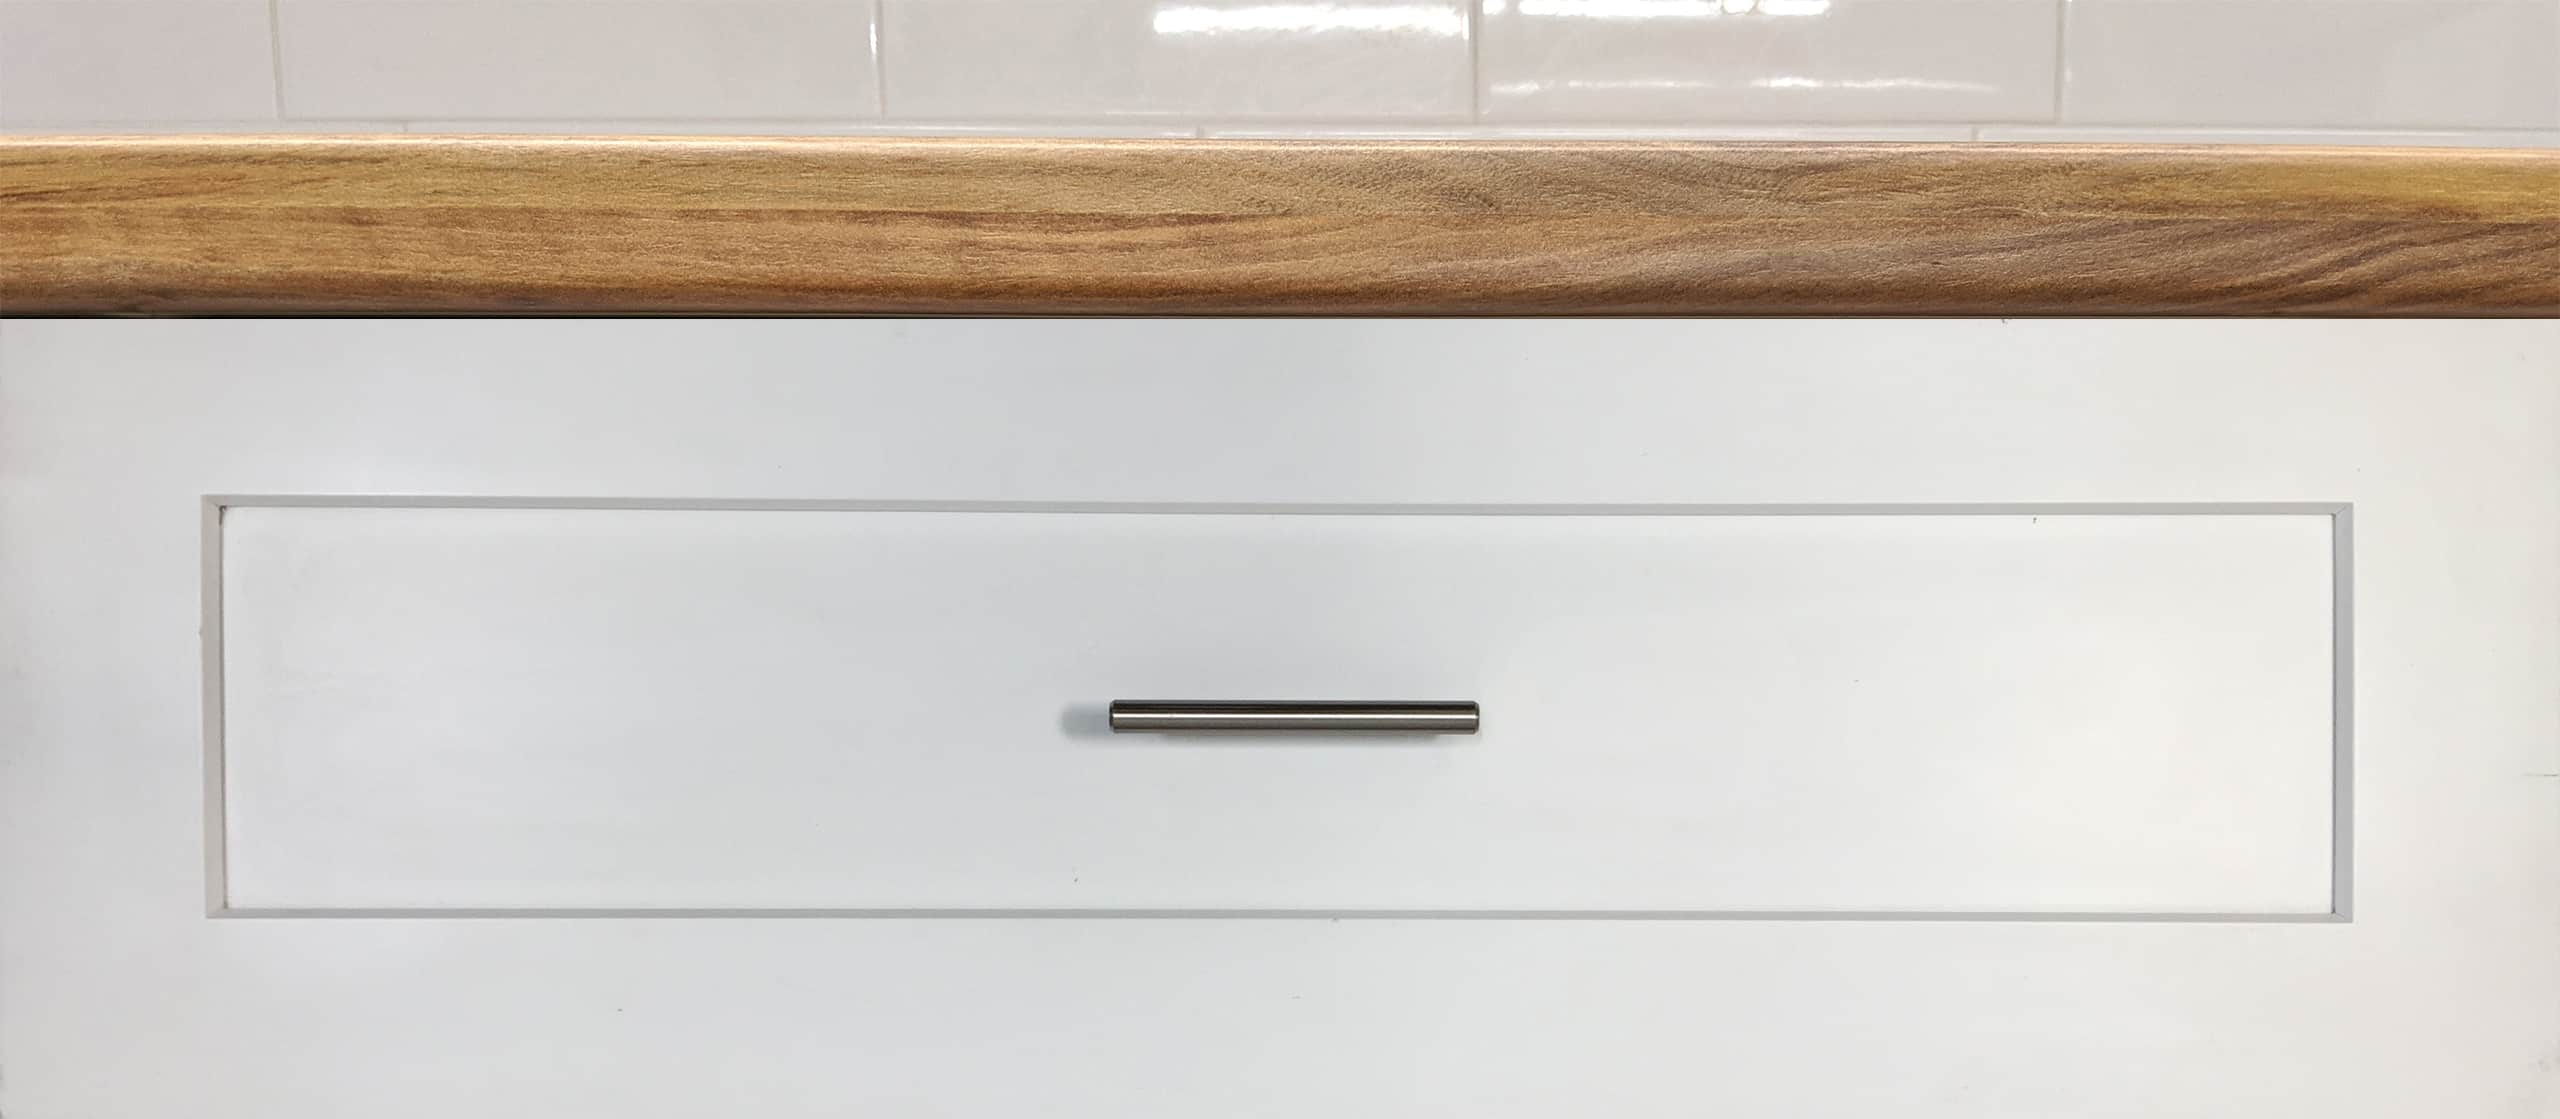 Shaker style cabinet drawer front handle pull installed